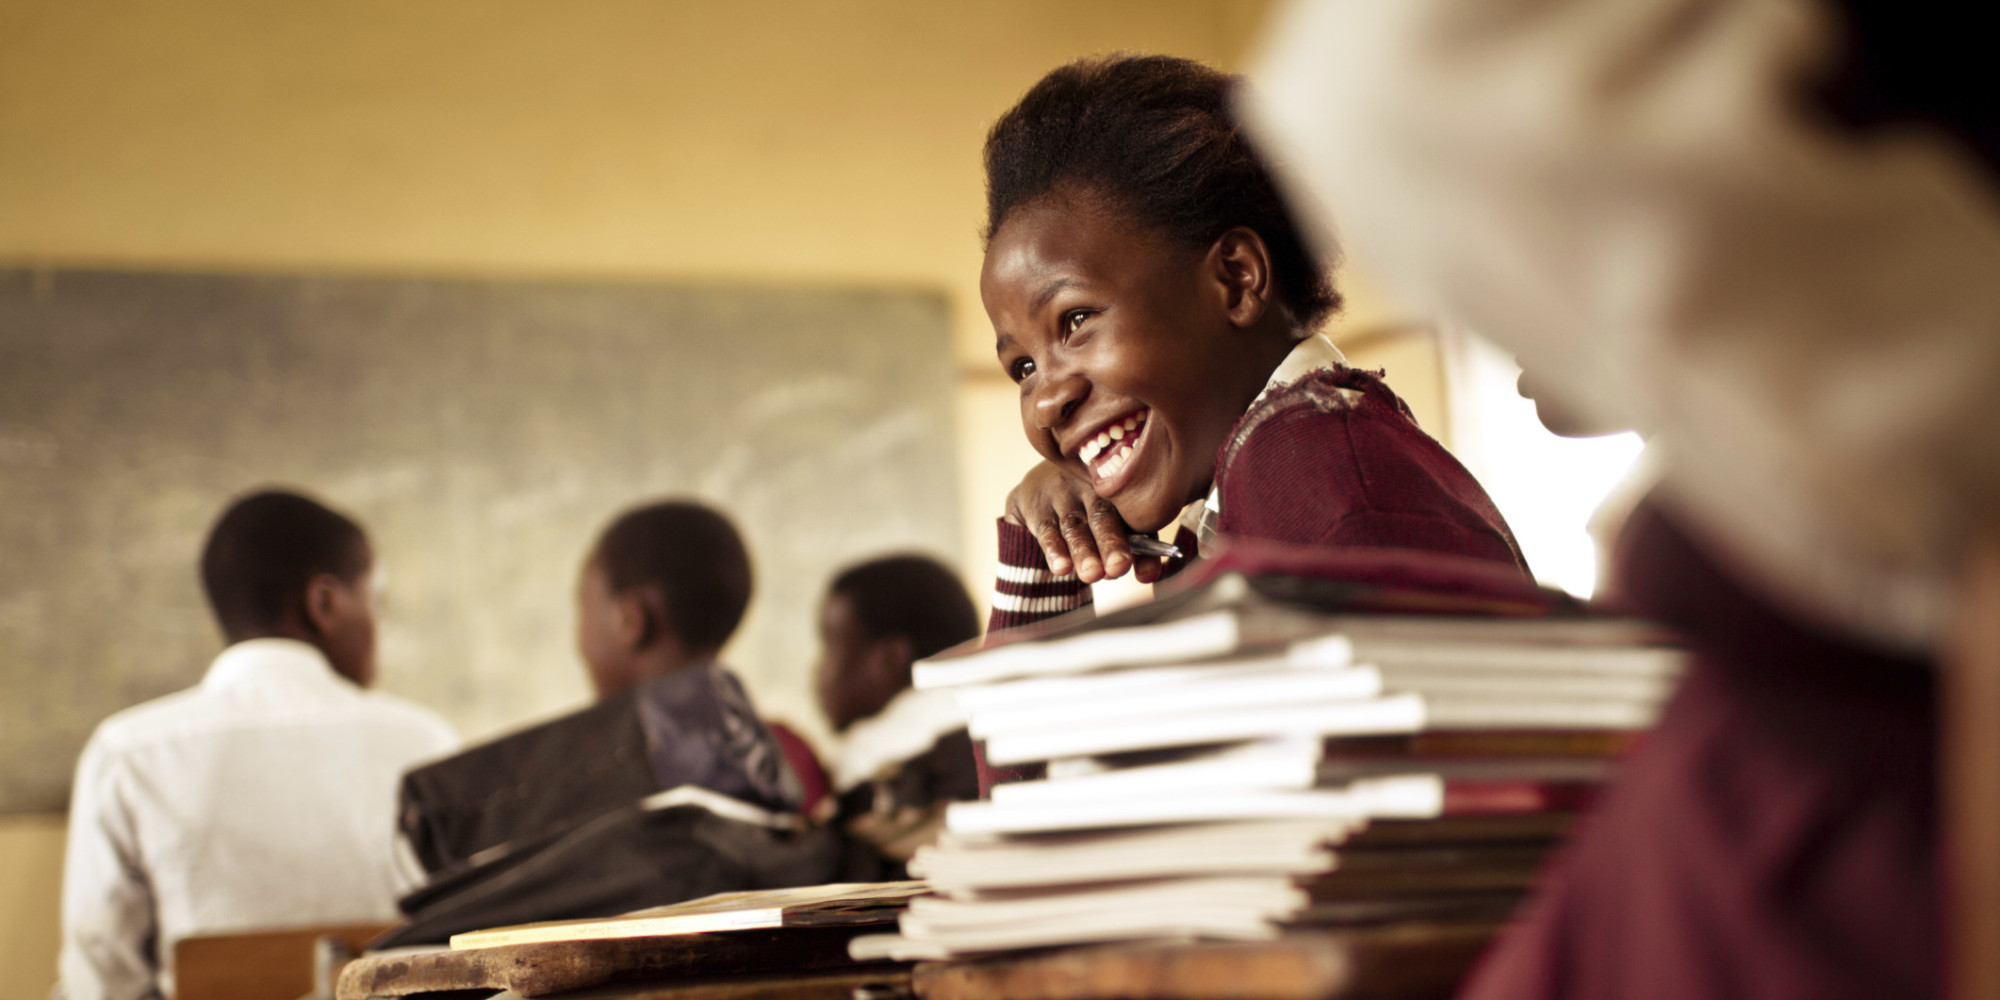 importance of education in nigeria essays There are less female teachers in nigeria as per a recent update the importance of girl's education aims brief note on importance of girls education, essay.